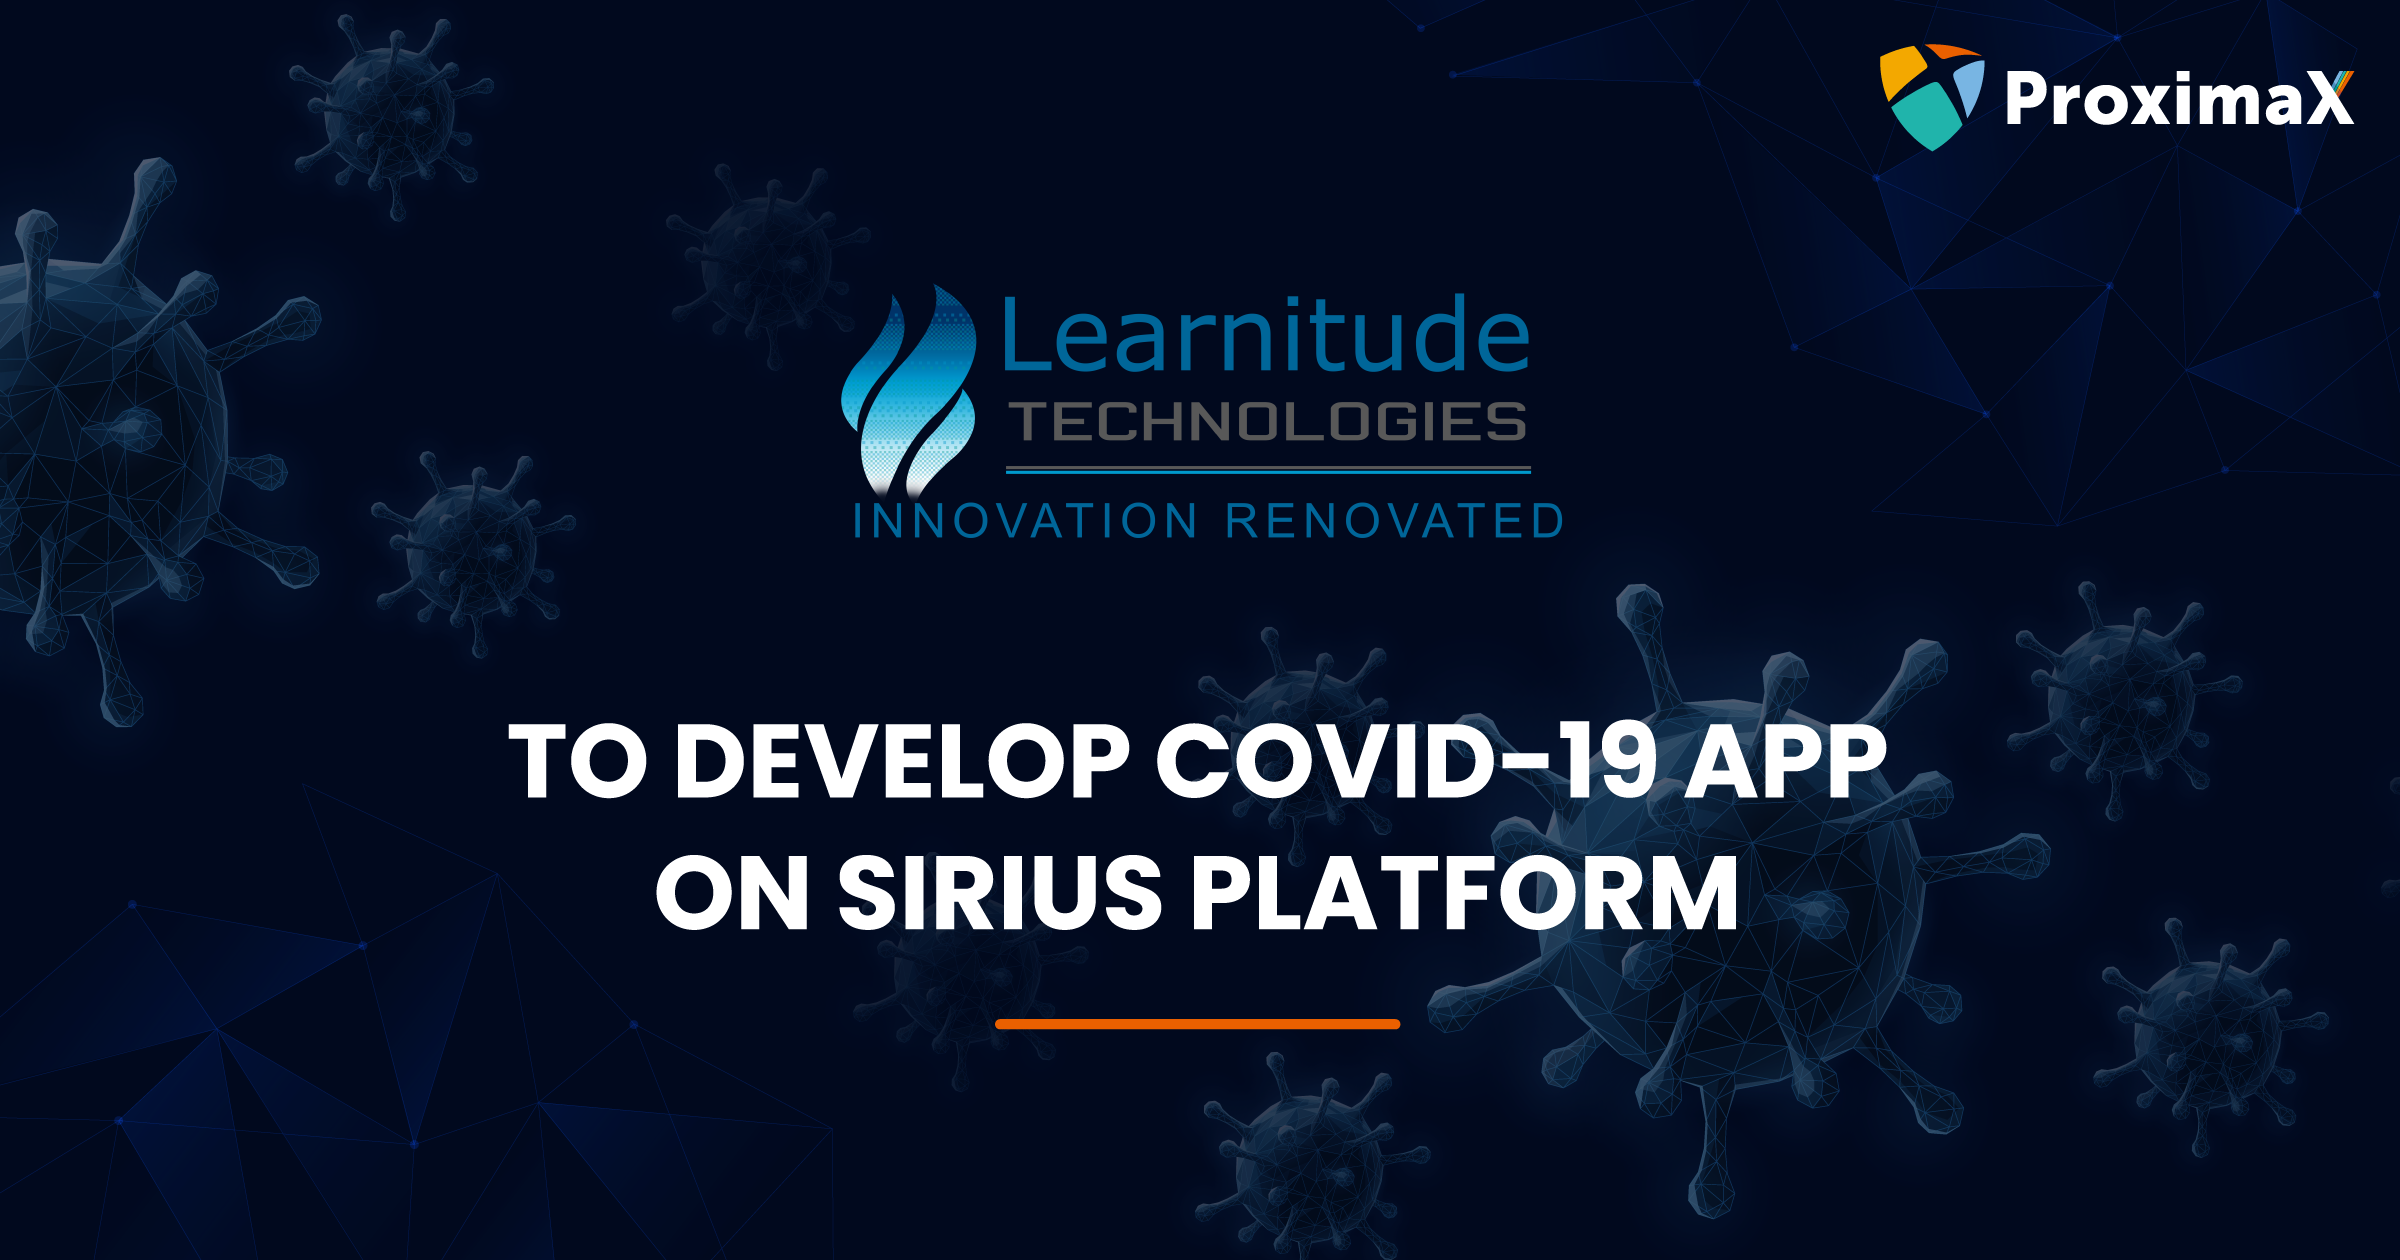 Learnitude Technologies and ProximaX to jointly develop Covid-19 app